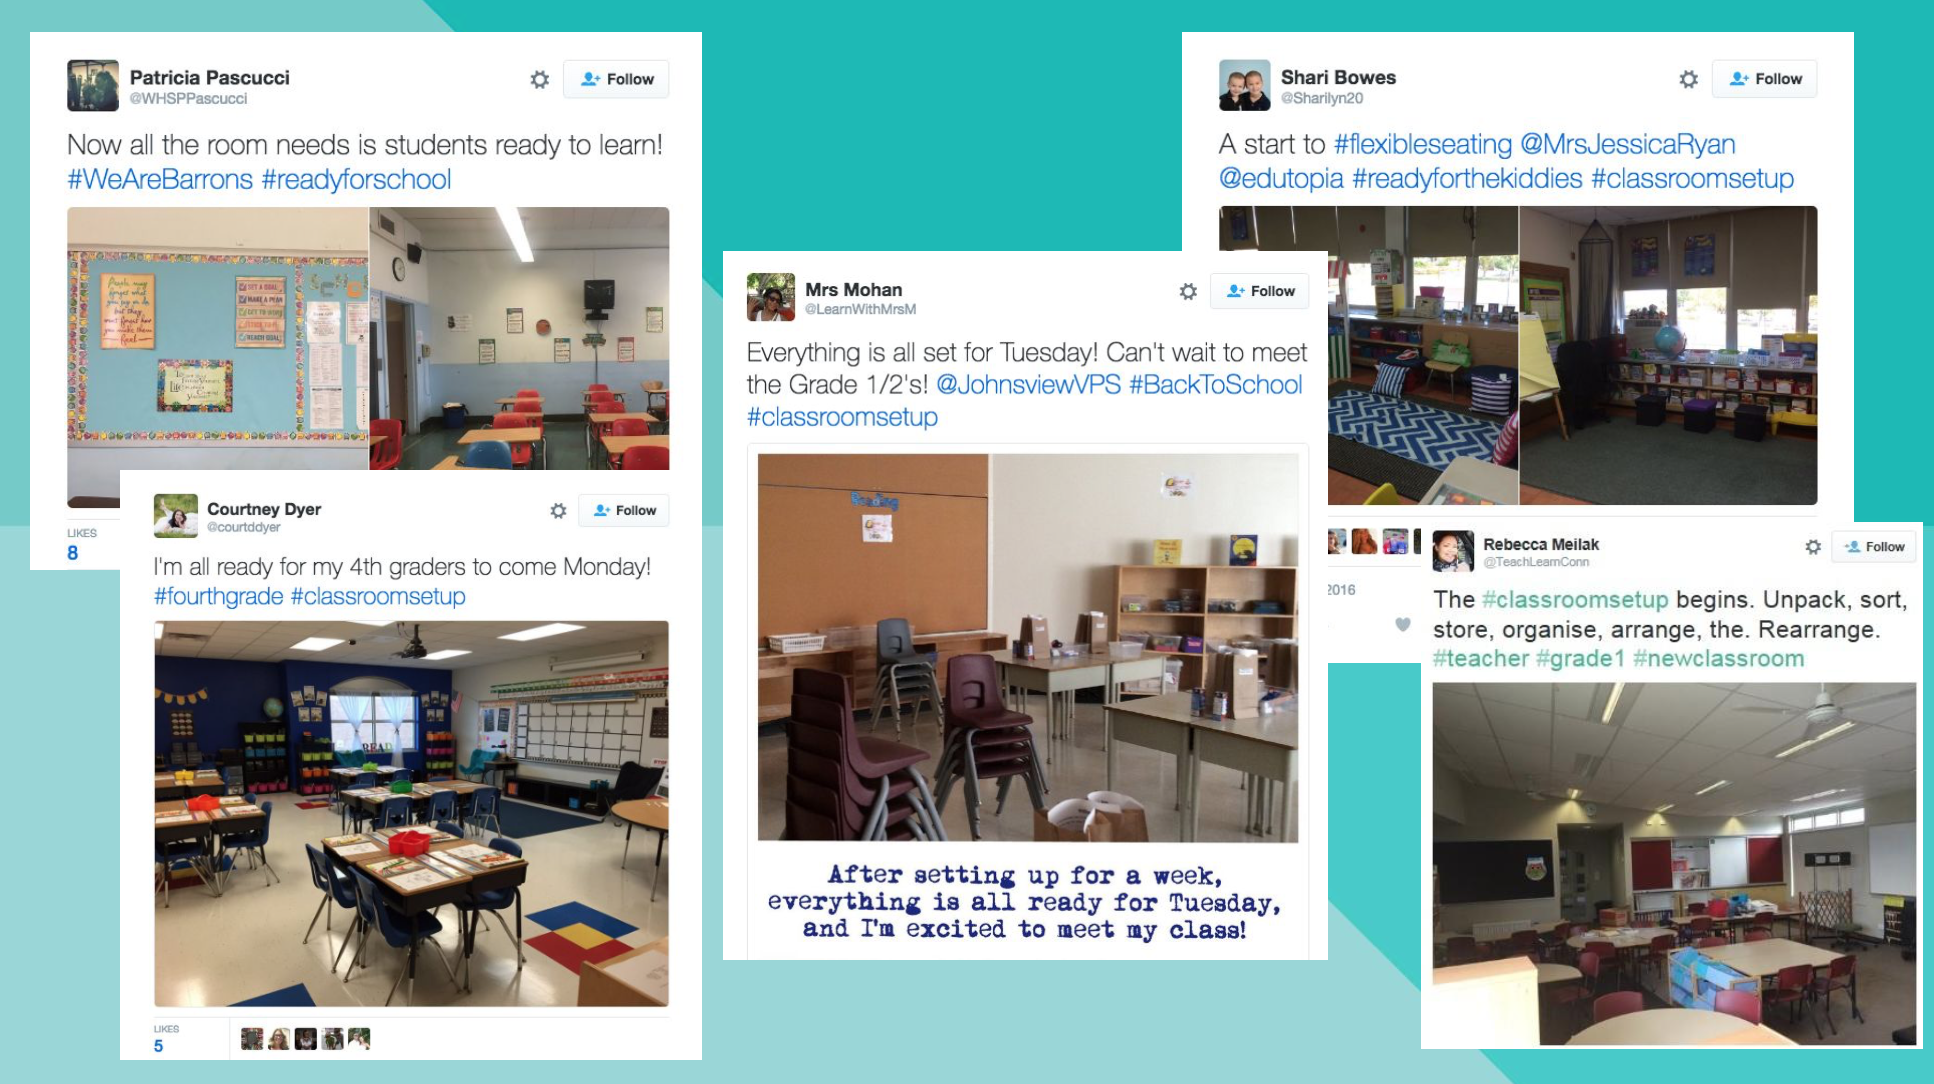 Teachers care about their spaces: a series of Tweets of teachers preparing classrooms for students